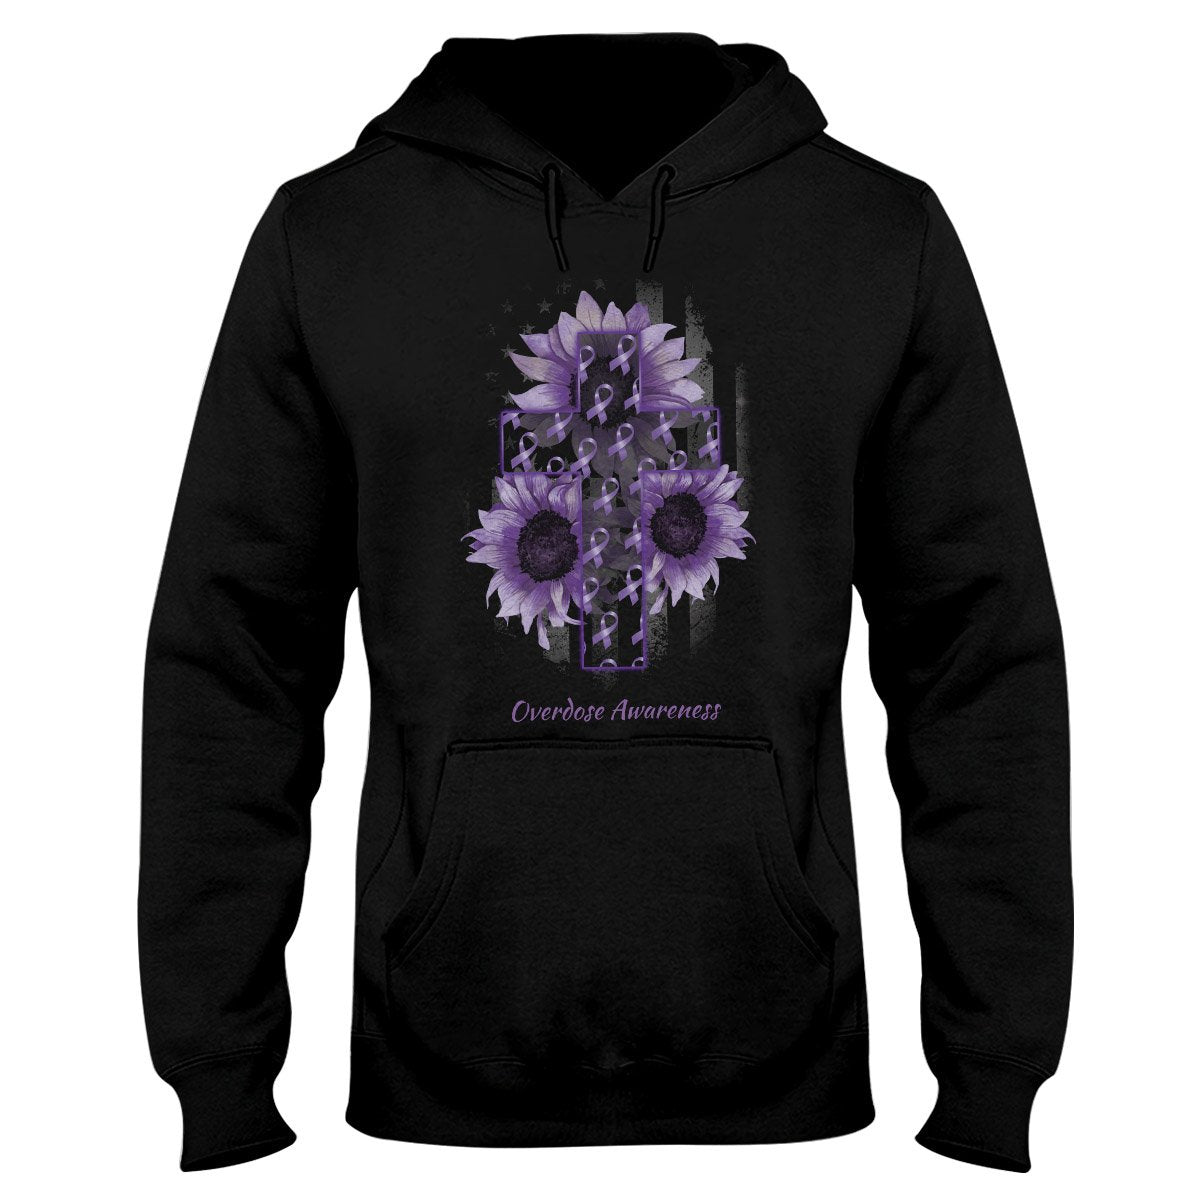 American Flag And The Cross Overdose Awareness Hoodie